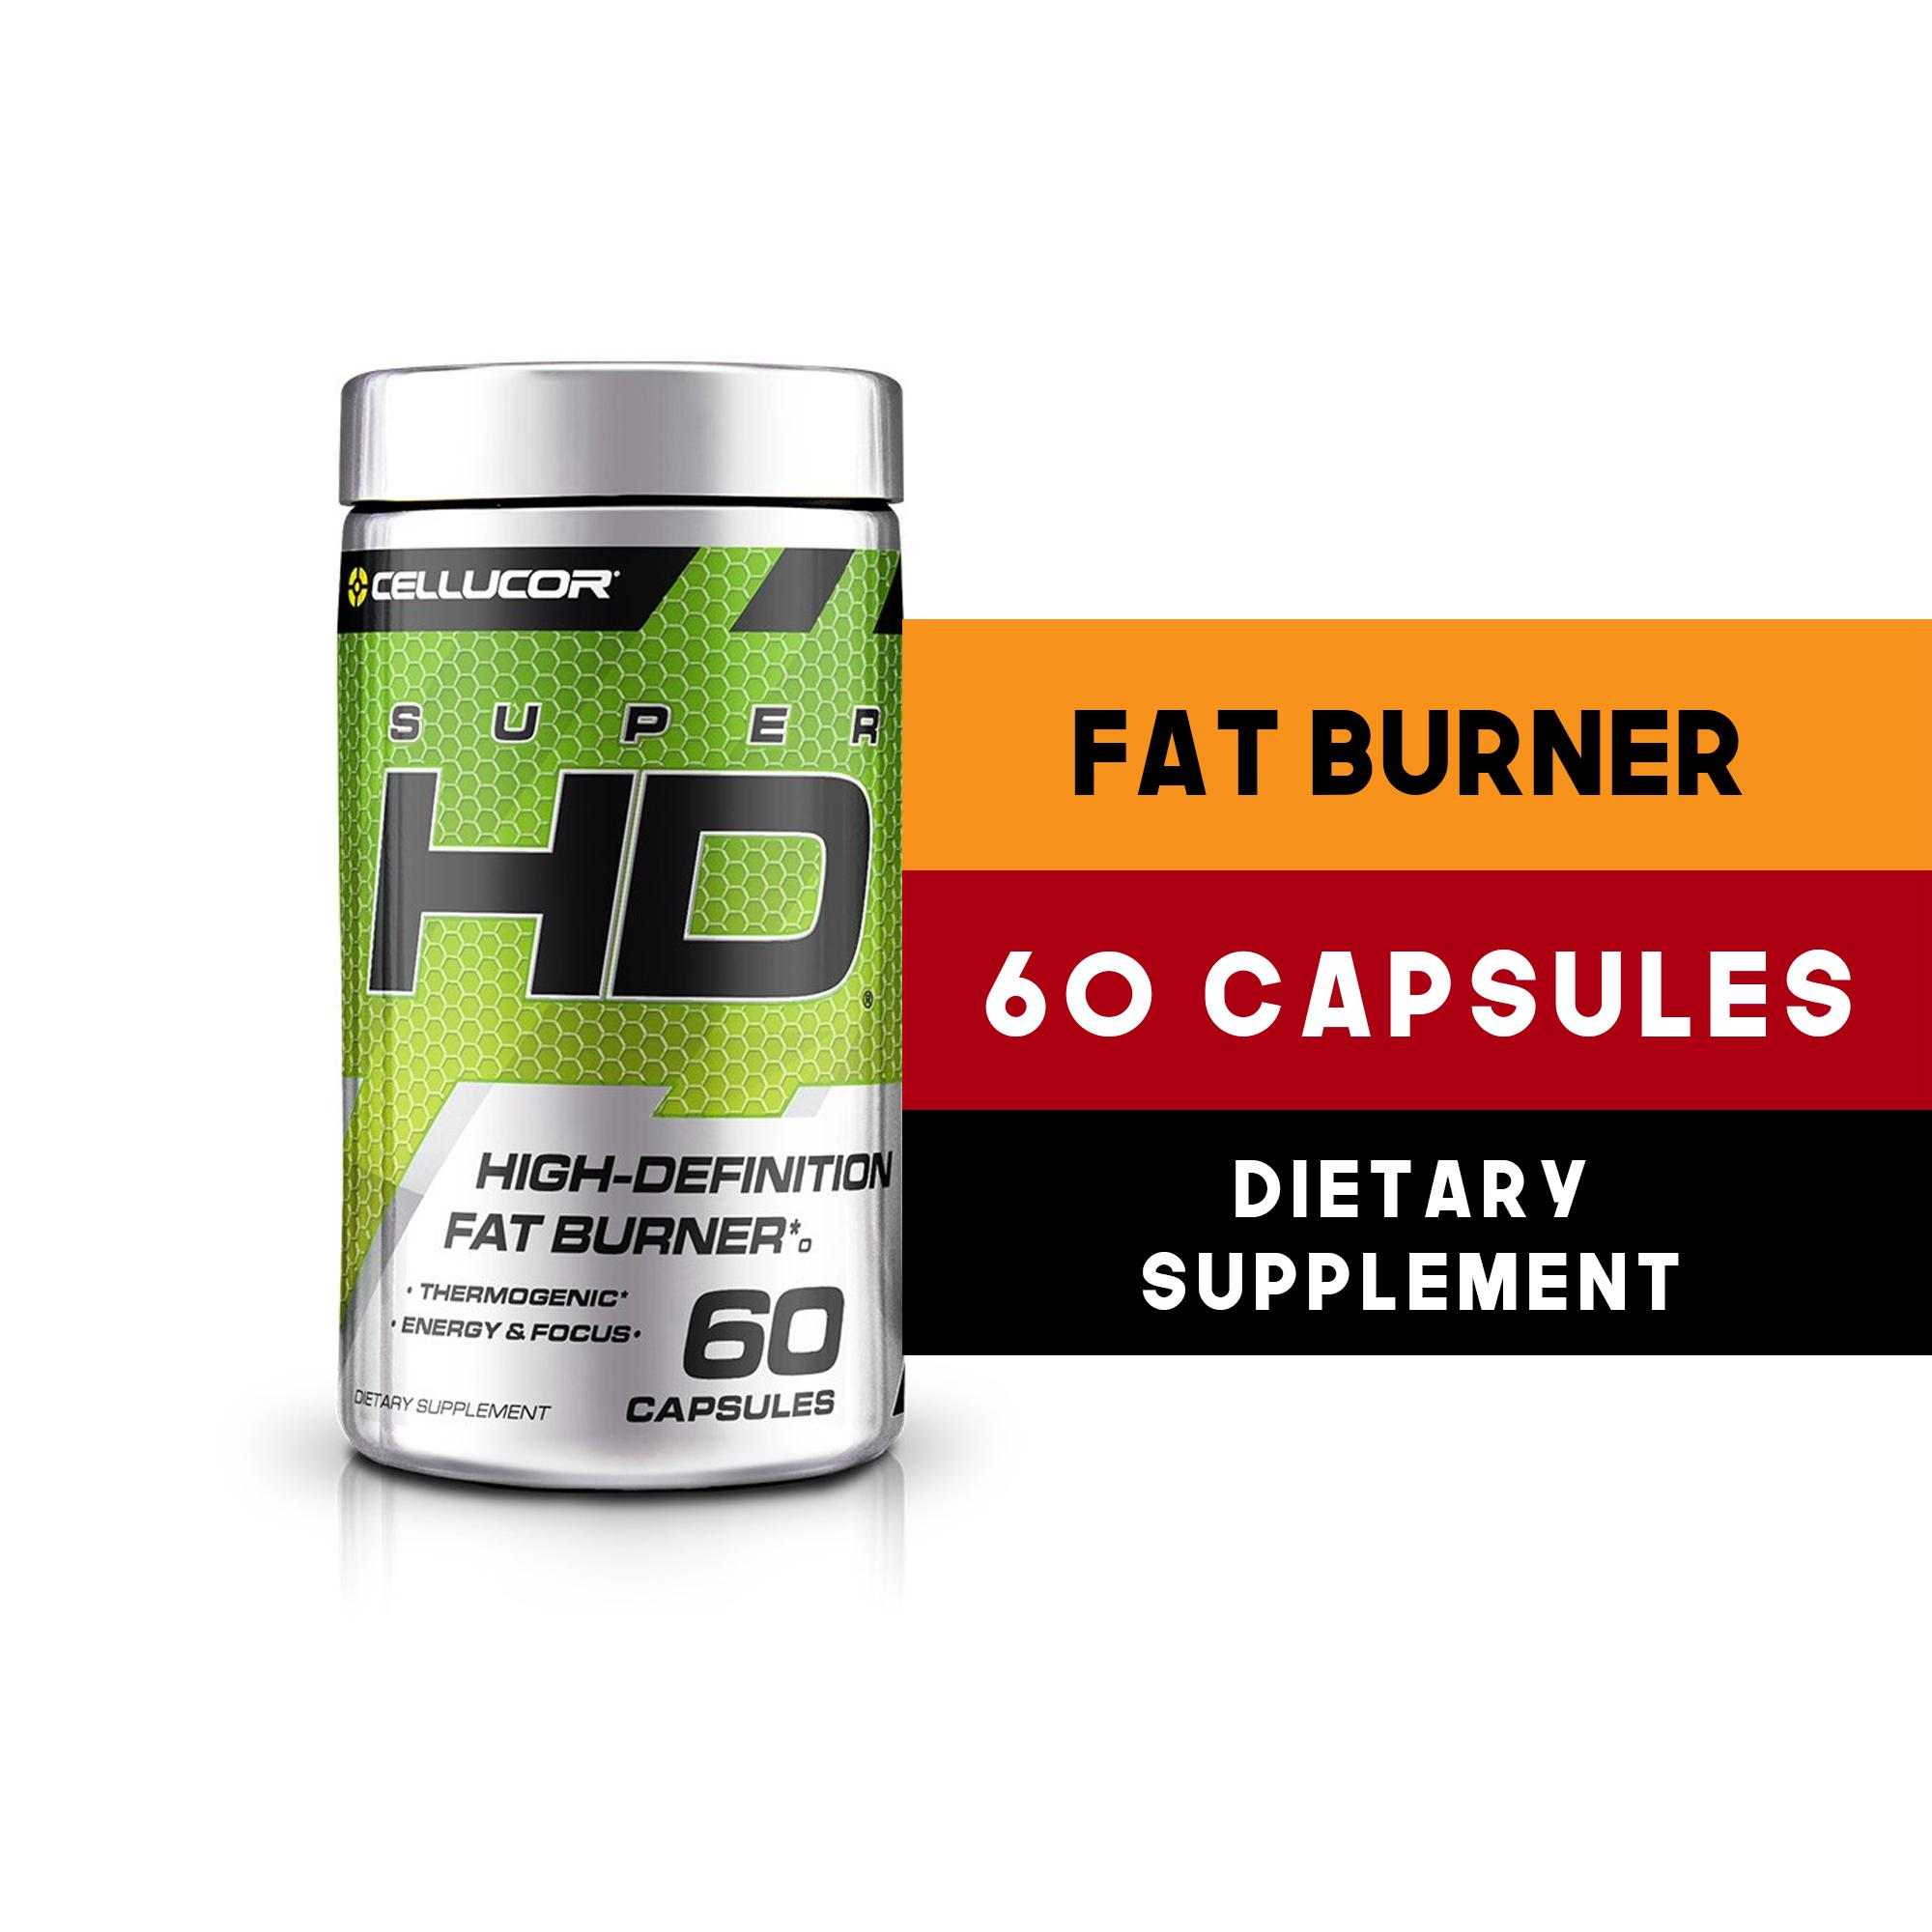 Cellucor Philippines Cellucor Fat Burner For Sale Prices